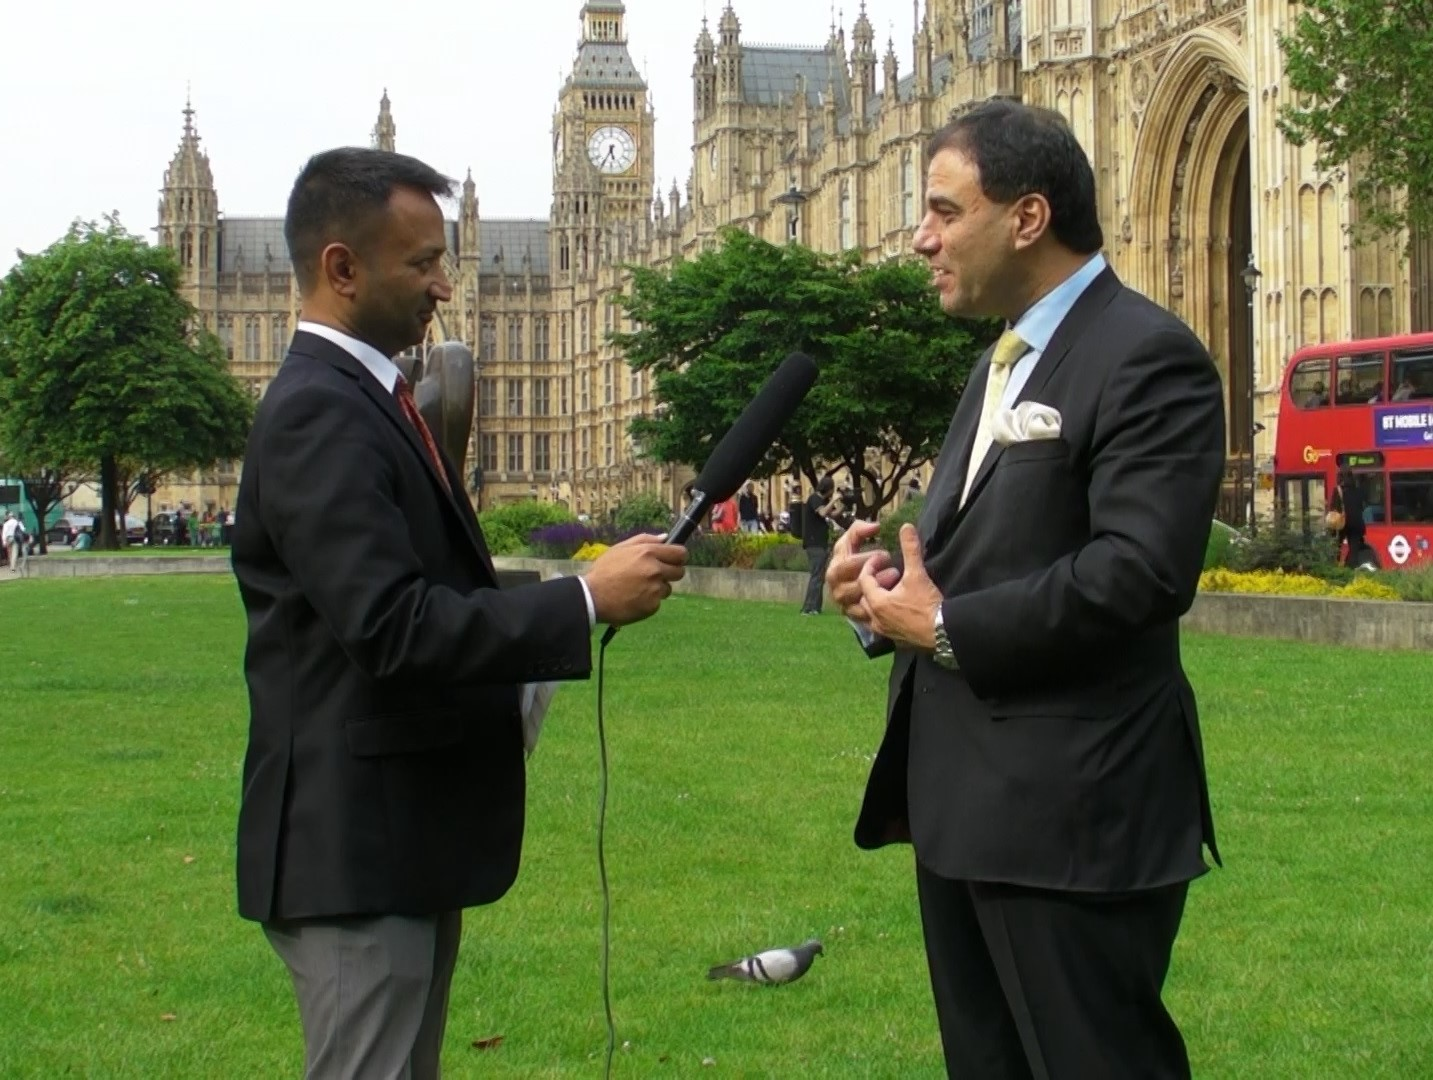 Lord Bilimoria interview brexit